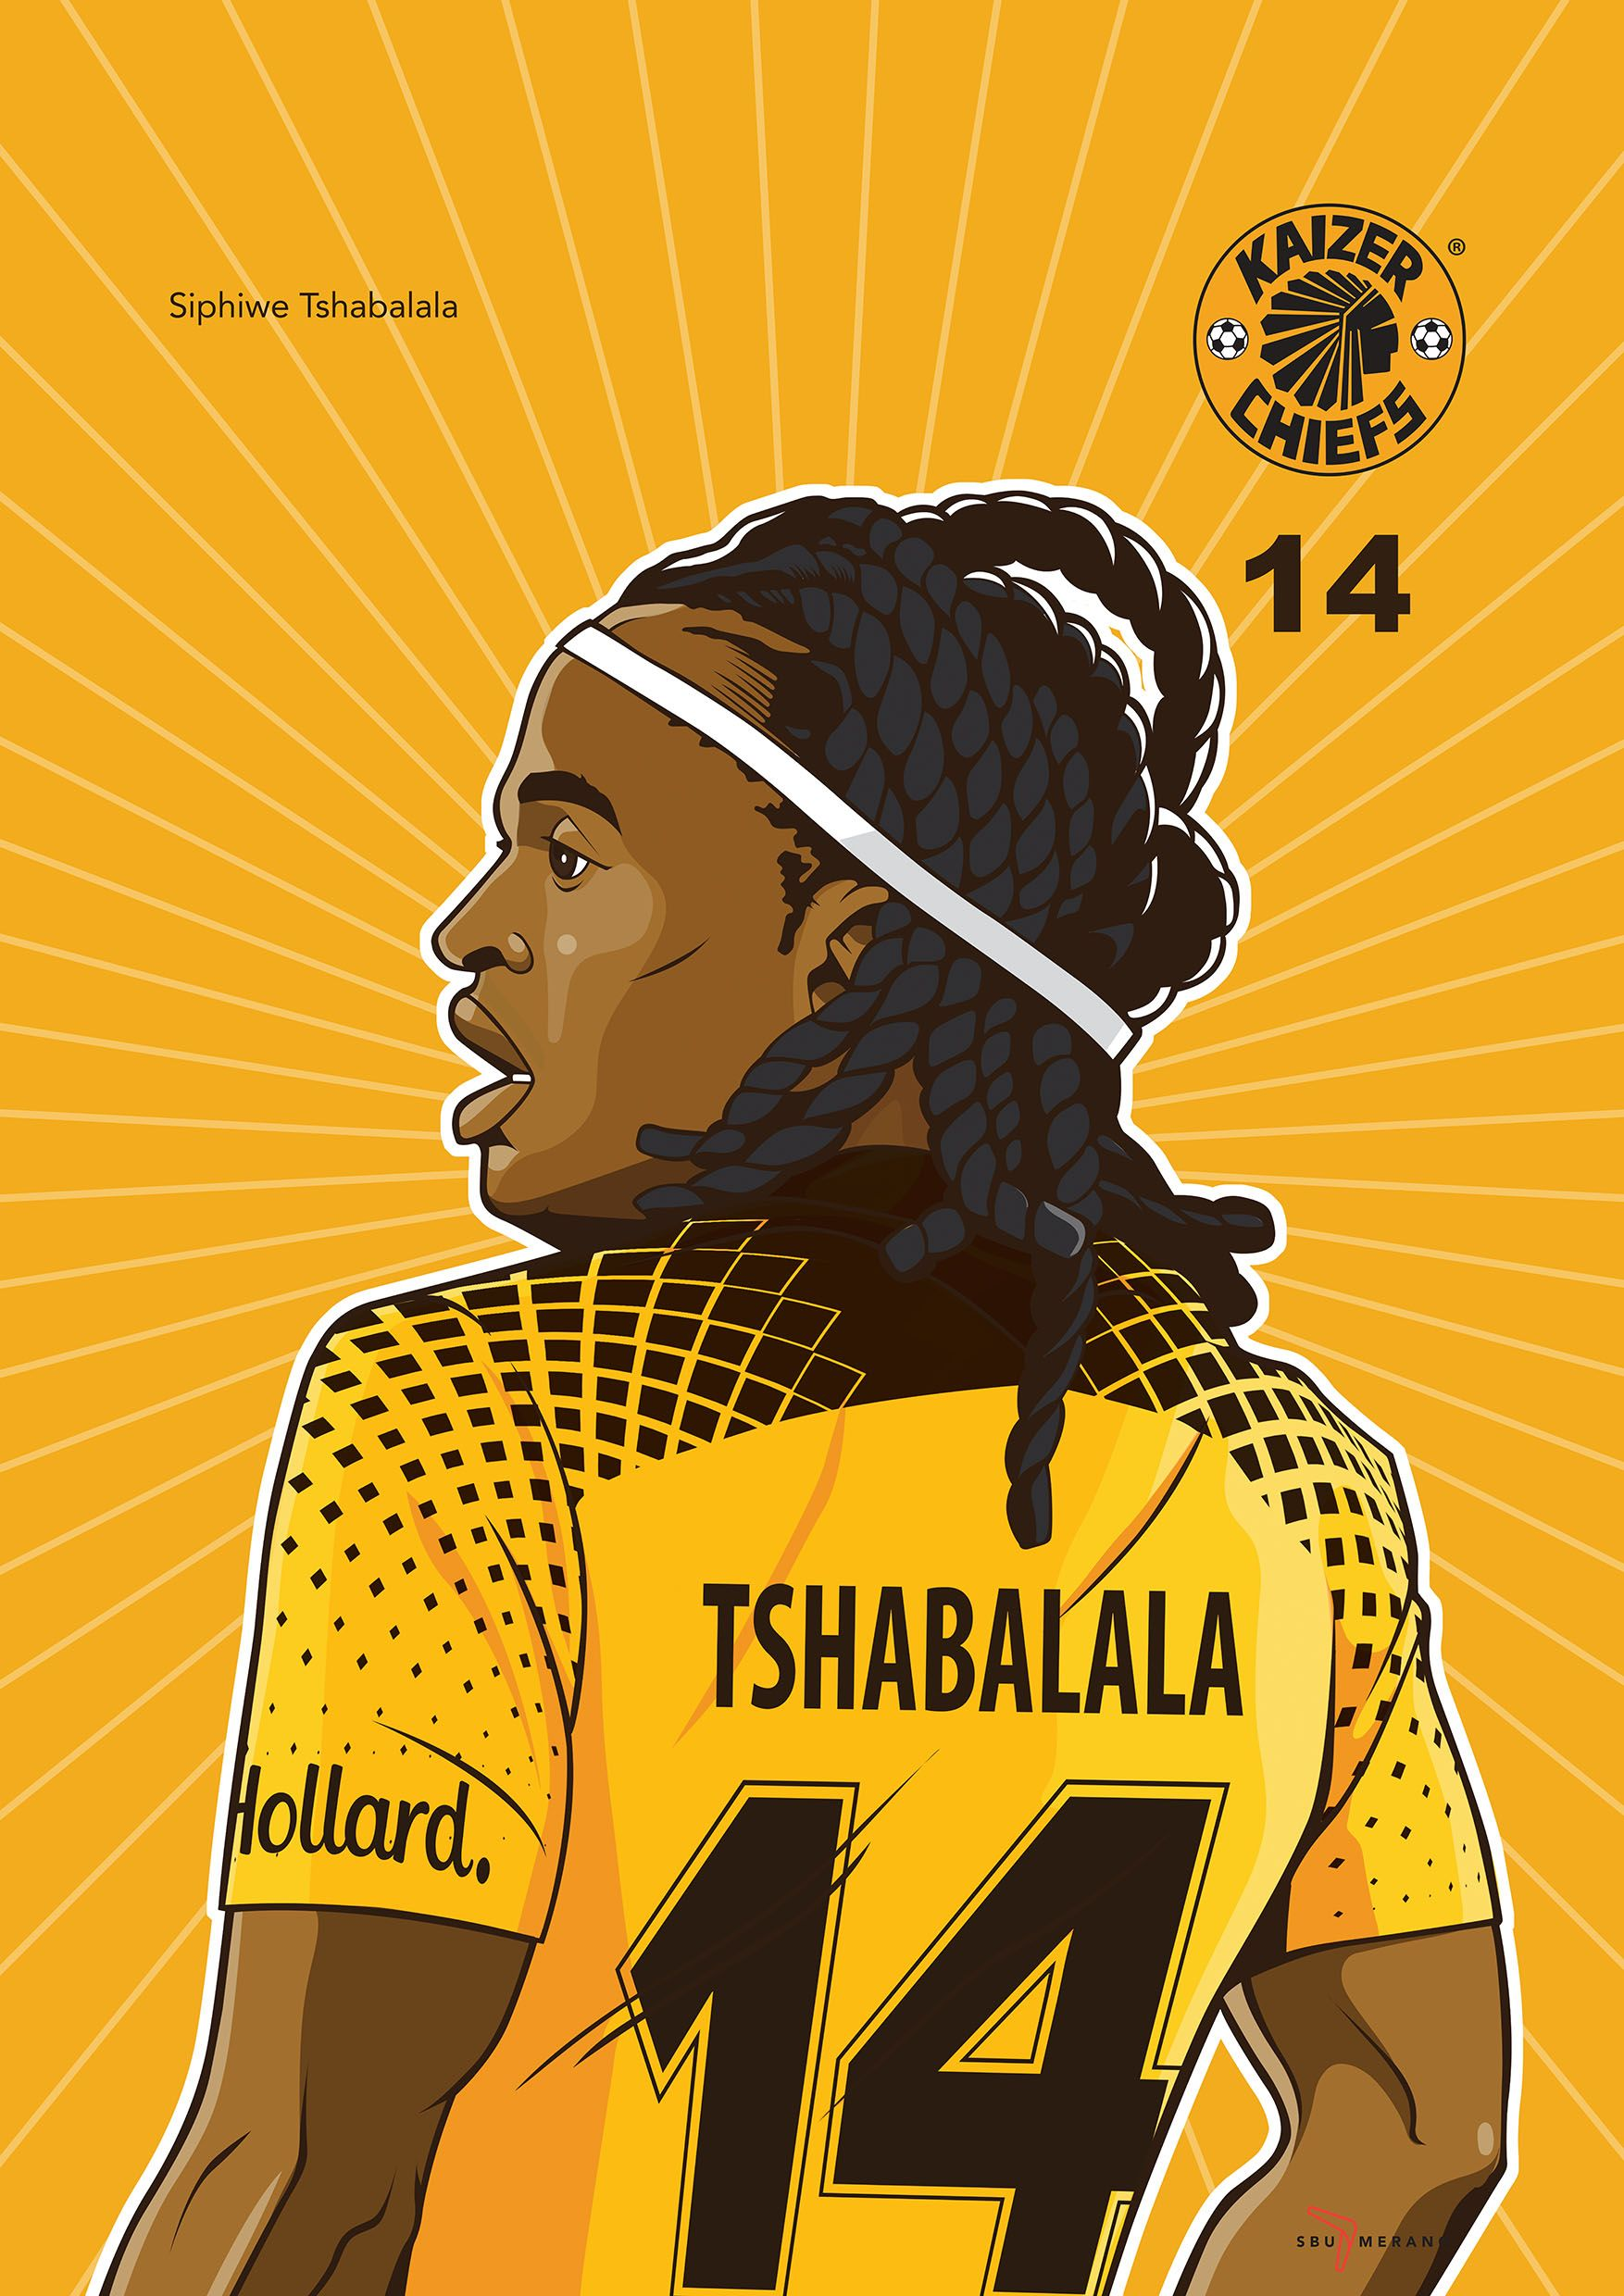 Iwisa Kaizer Chiefs Players Poster Collection Siphiwe Tshabalala Kaizer Chiefs Soccer Team Chief